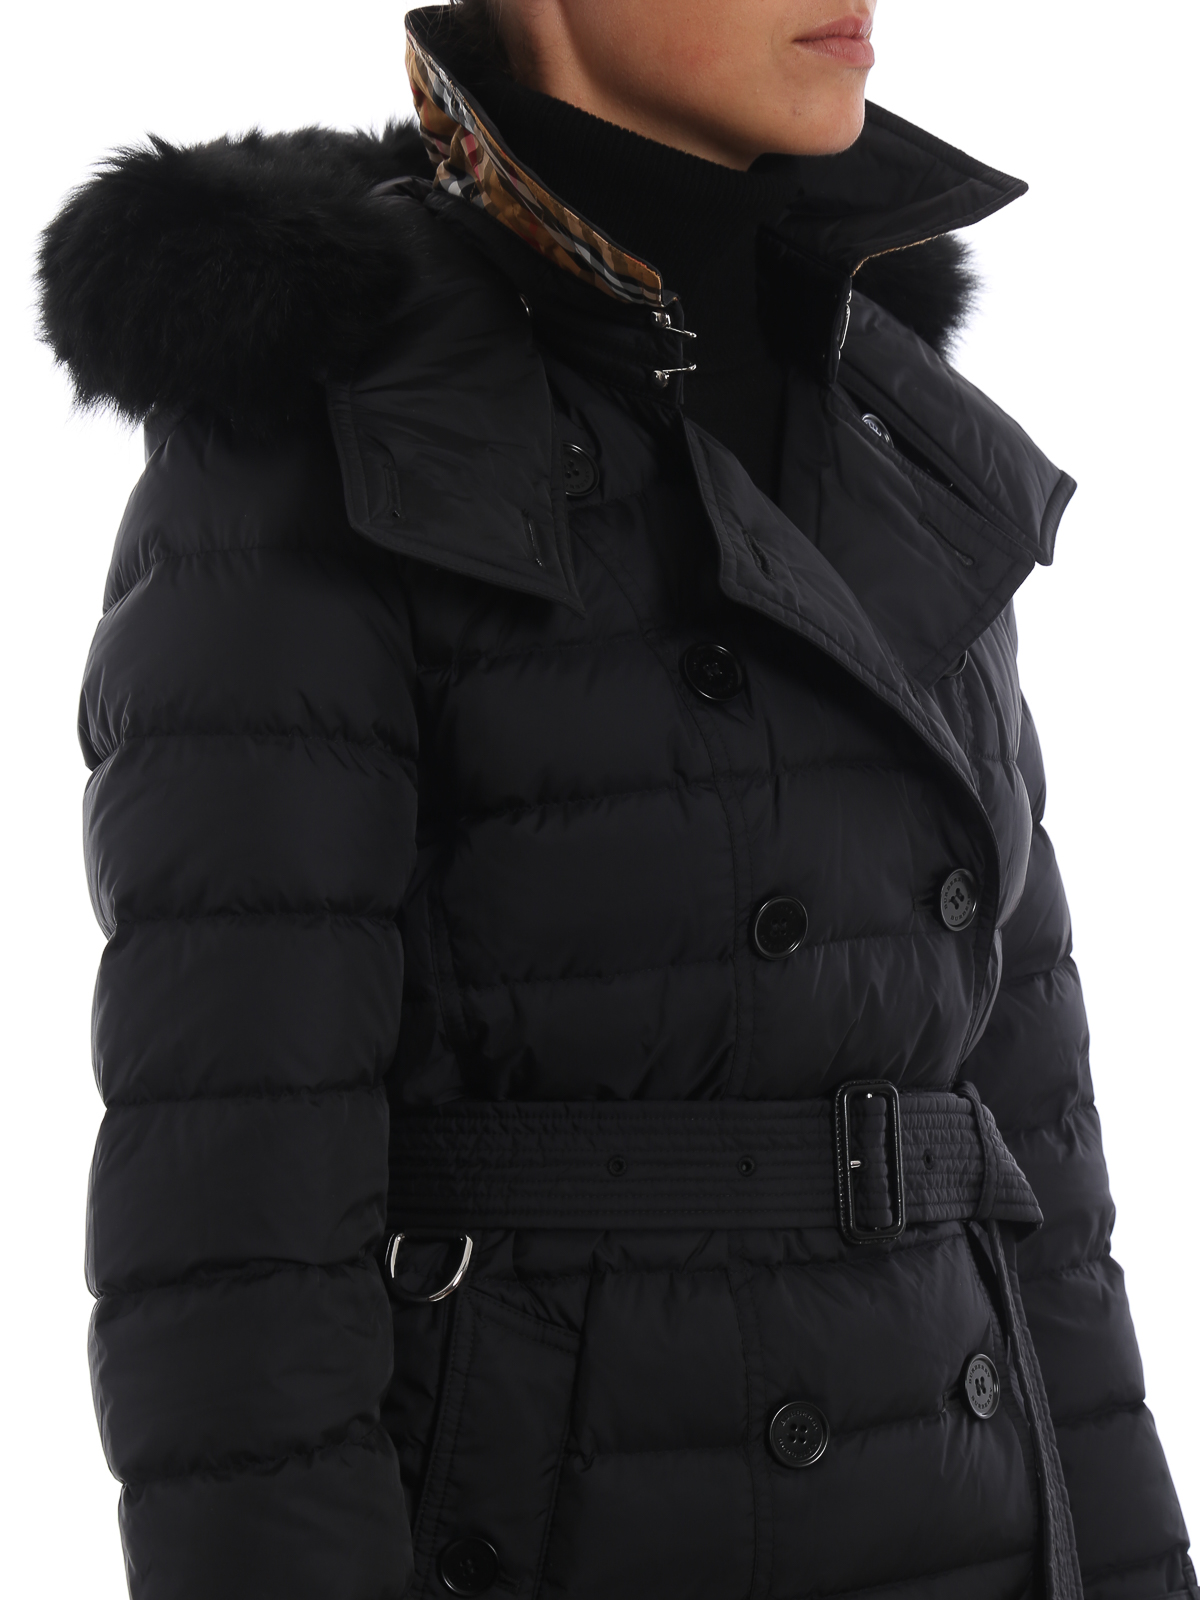 cheap sale new lower prices details for Burberry - Dalmerton padded coat - padded coats - 8003844